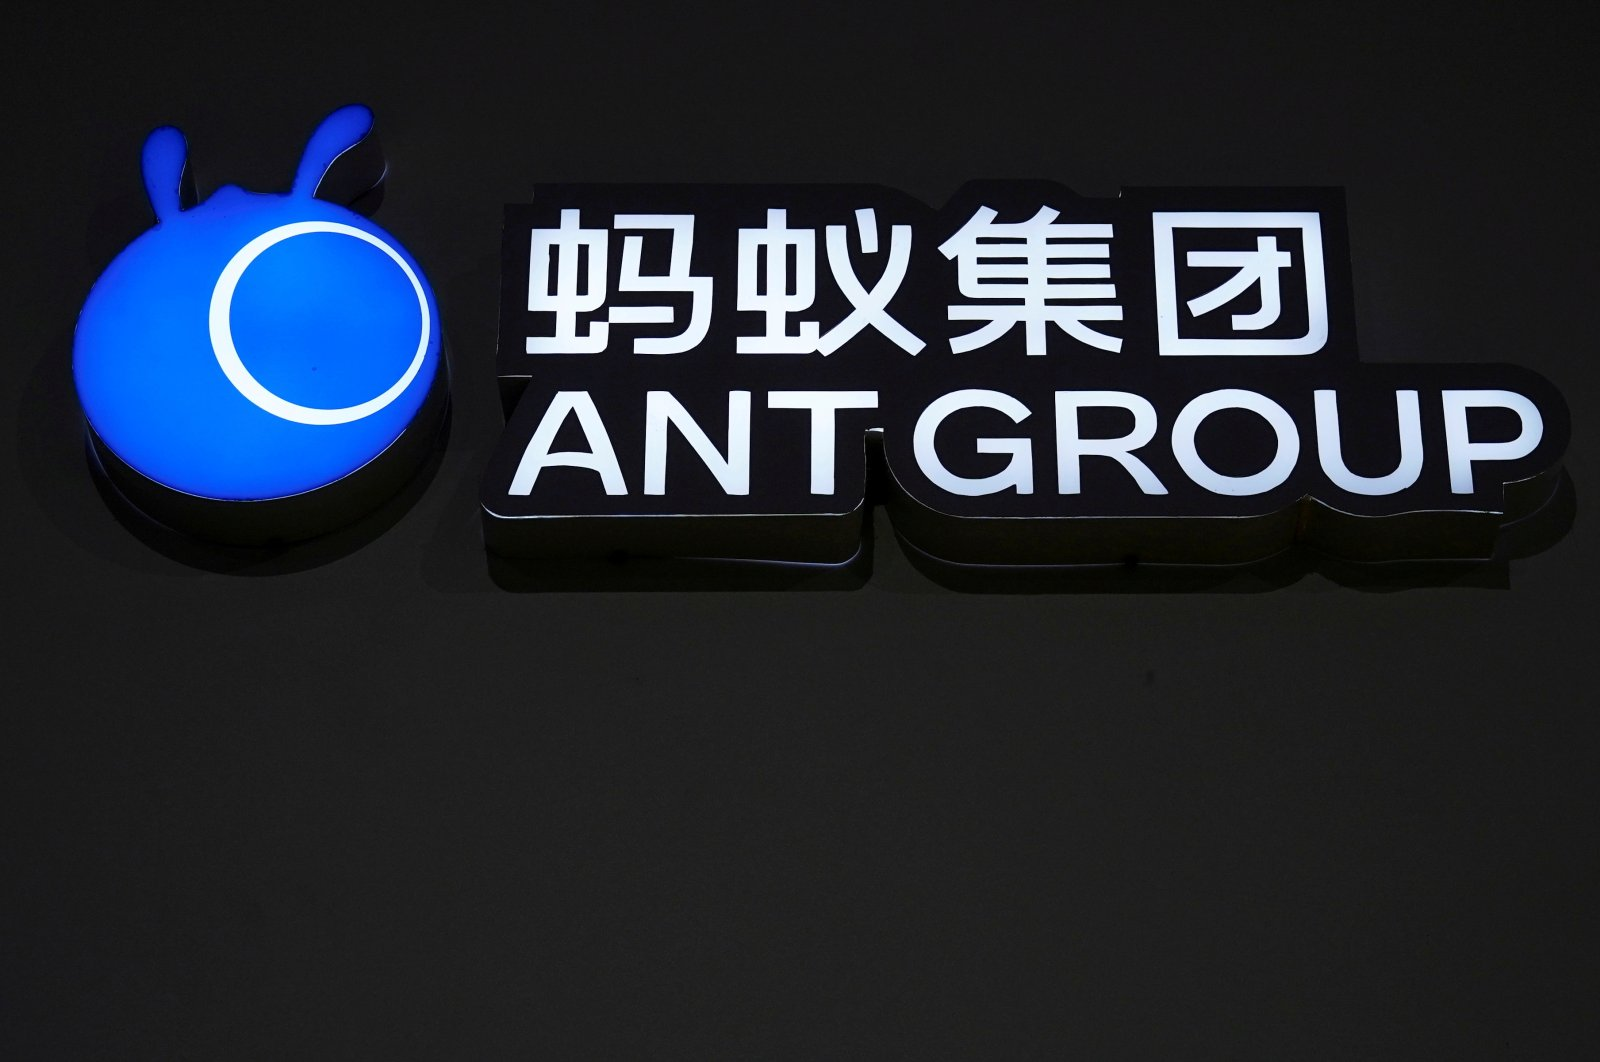 A sign of Ant Group is seen during the World Internet Conference (WIC) in Wuzhen, Zhejiang province, China, Nov. 23, 2020. (Reuters Photo)